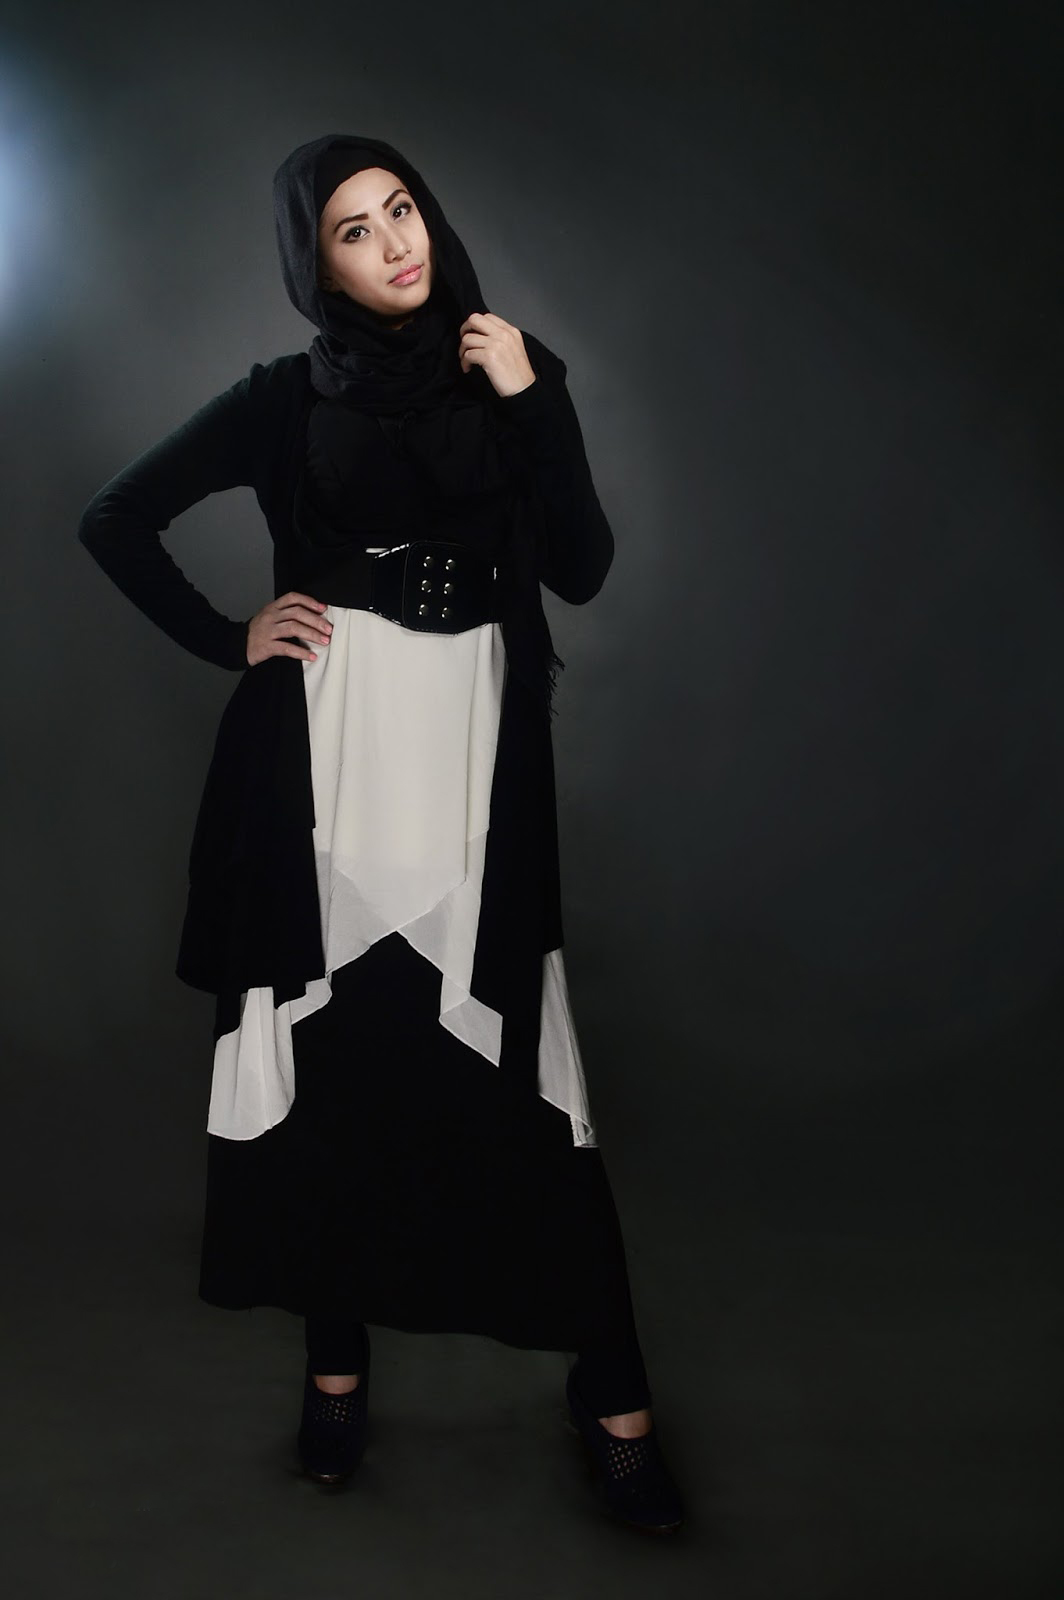 model hijab untuk wajah bulat model hijab syar'i model hijab simple model hijab modern